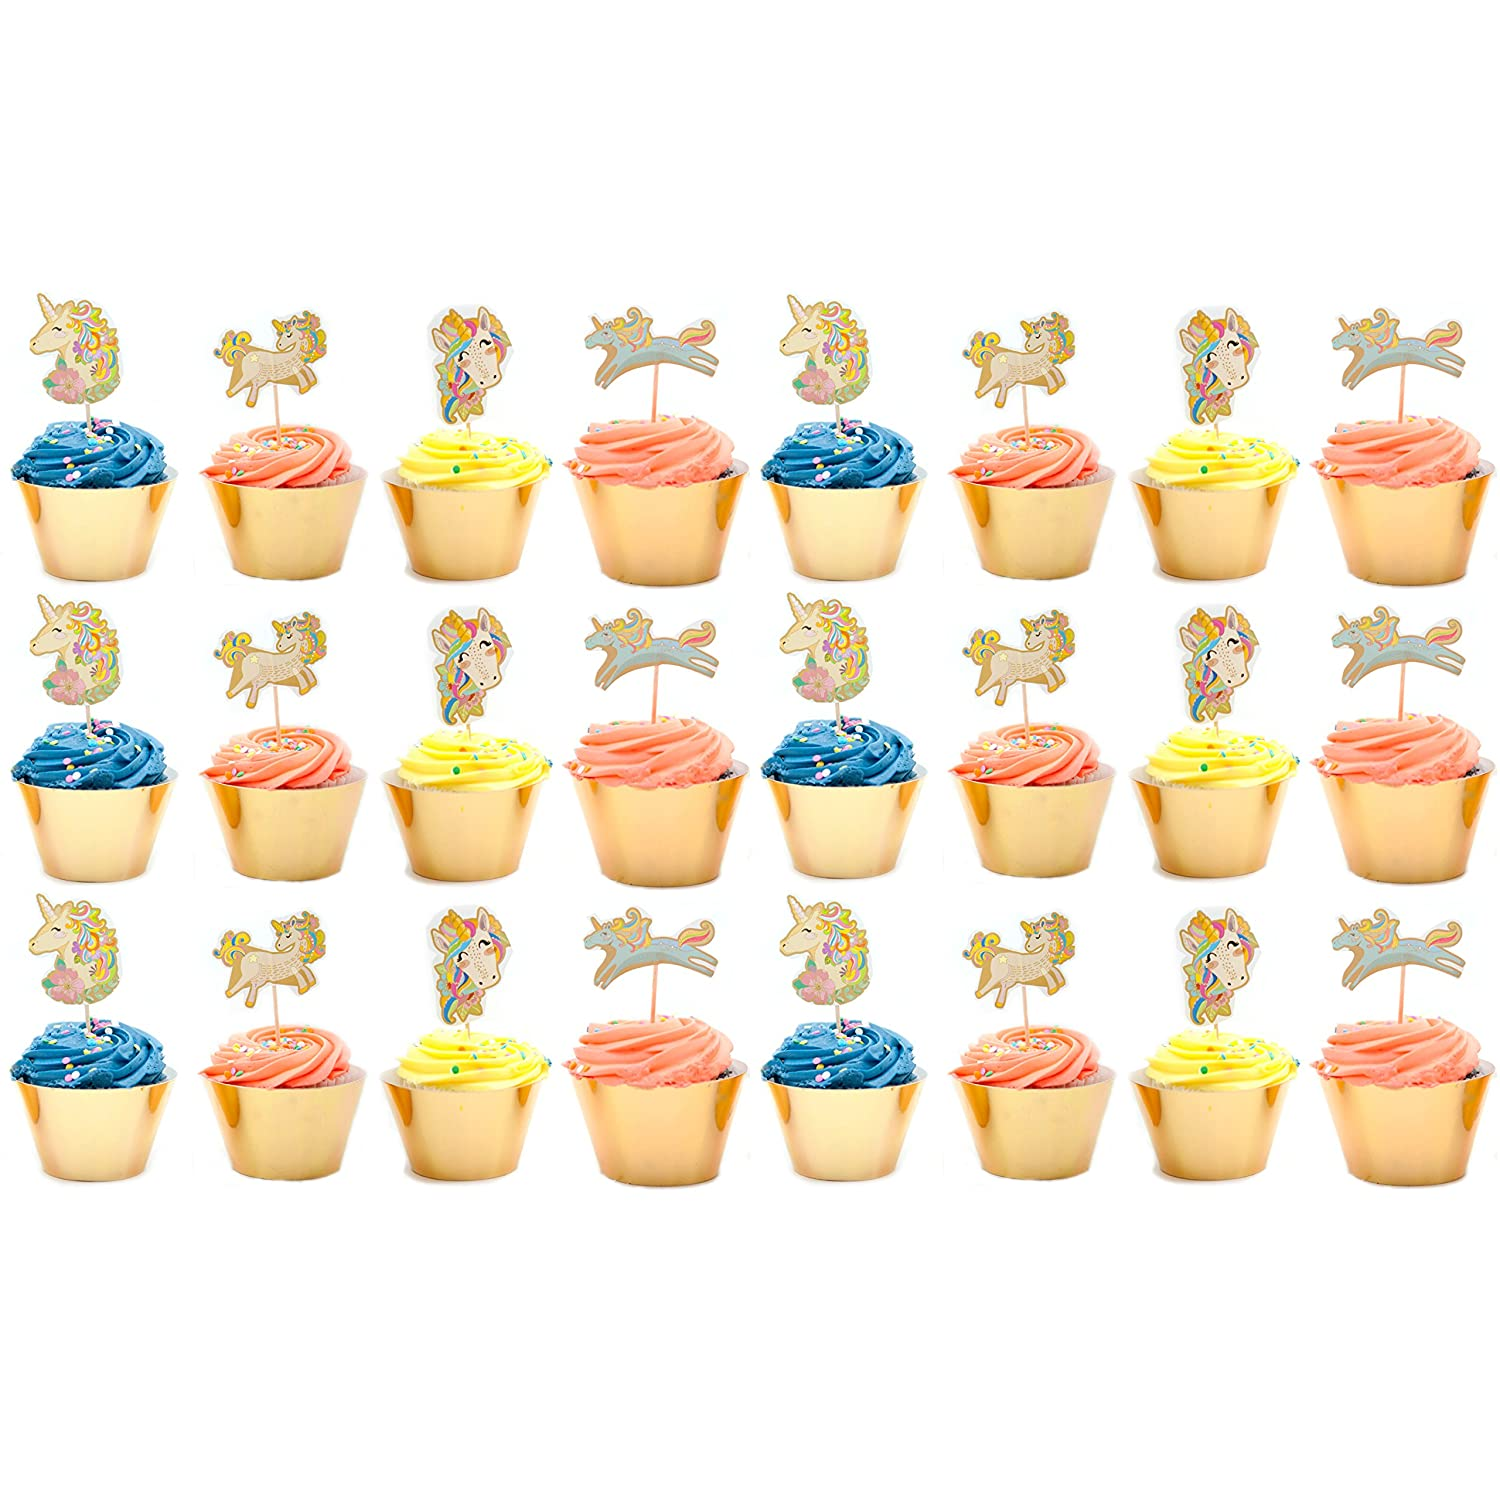 Lilly and the Bee Novelties Magical Unicorn Cupcake Party Pack for 24 Cupcakes